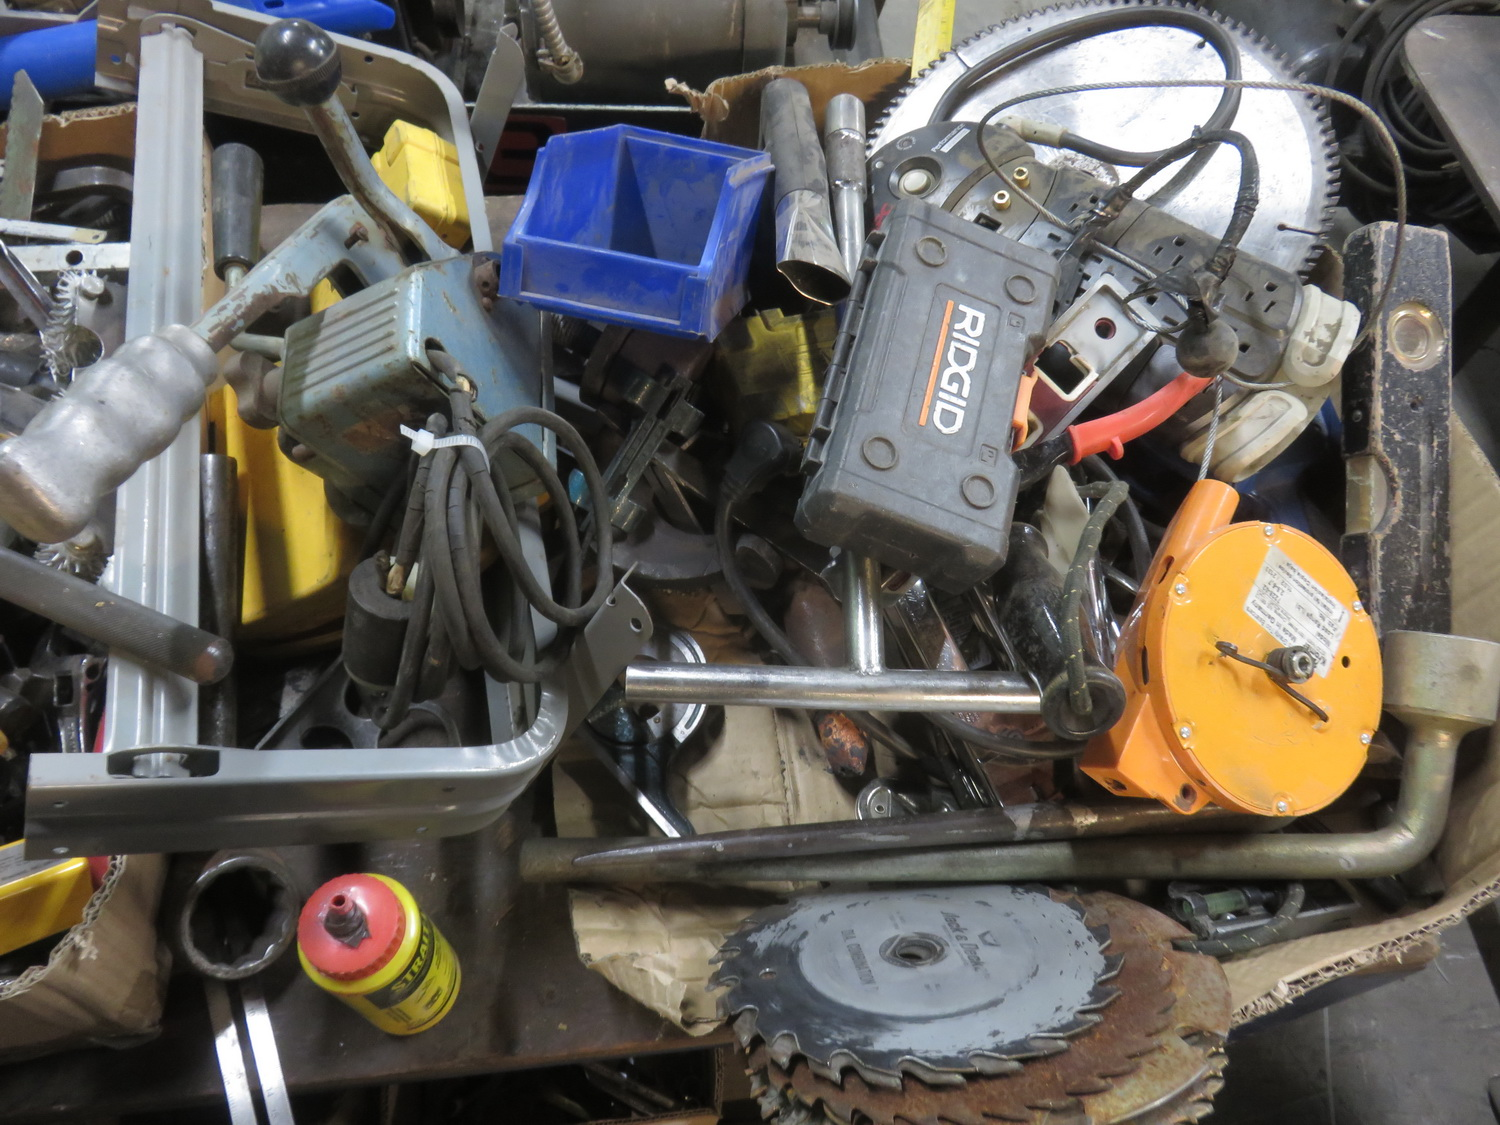 Lot 31 - LOT - SAW BLADES, KNIVES, PAPER STAND + ACCESSORIES